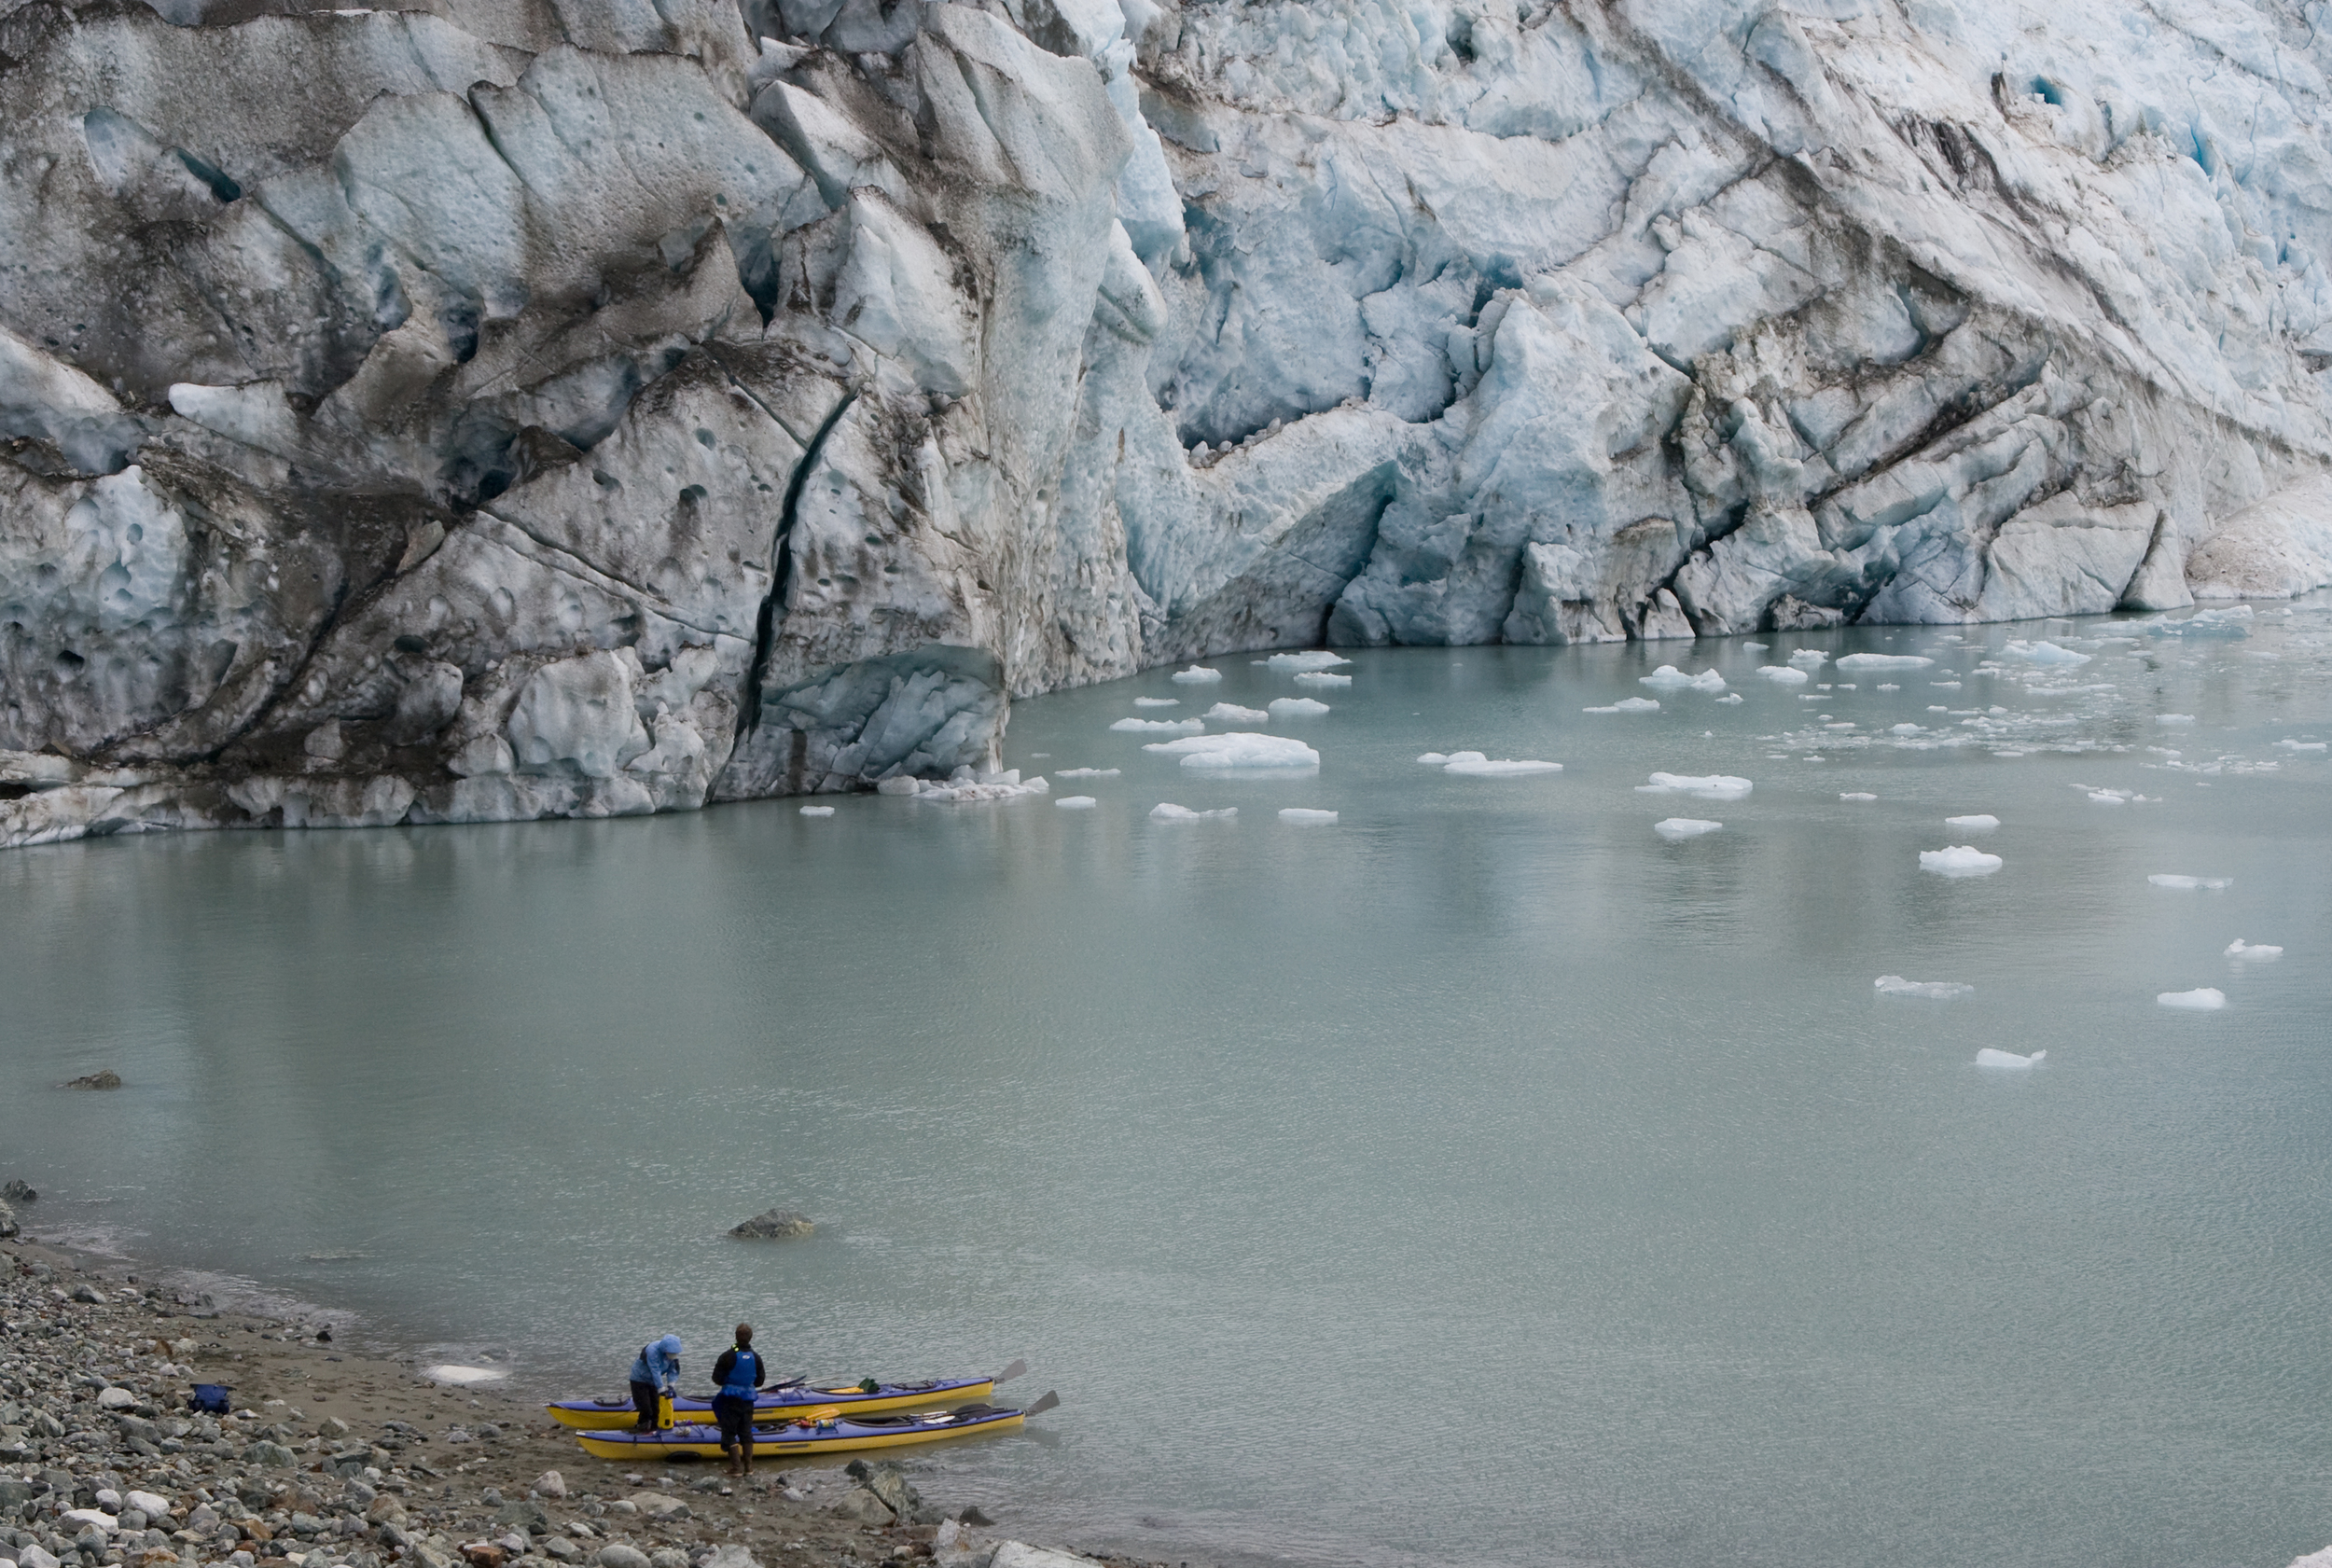 Paddlers land on the beach near Lamplugh Glacier while exploring Glacier Bay National Park by kayak.